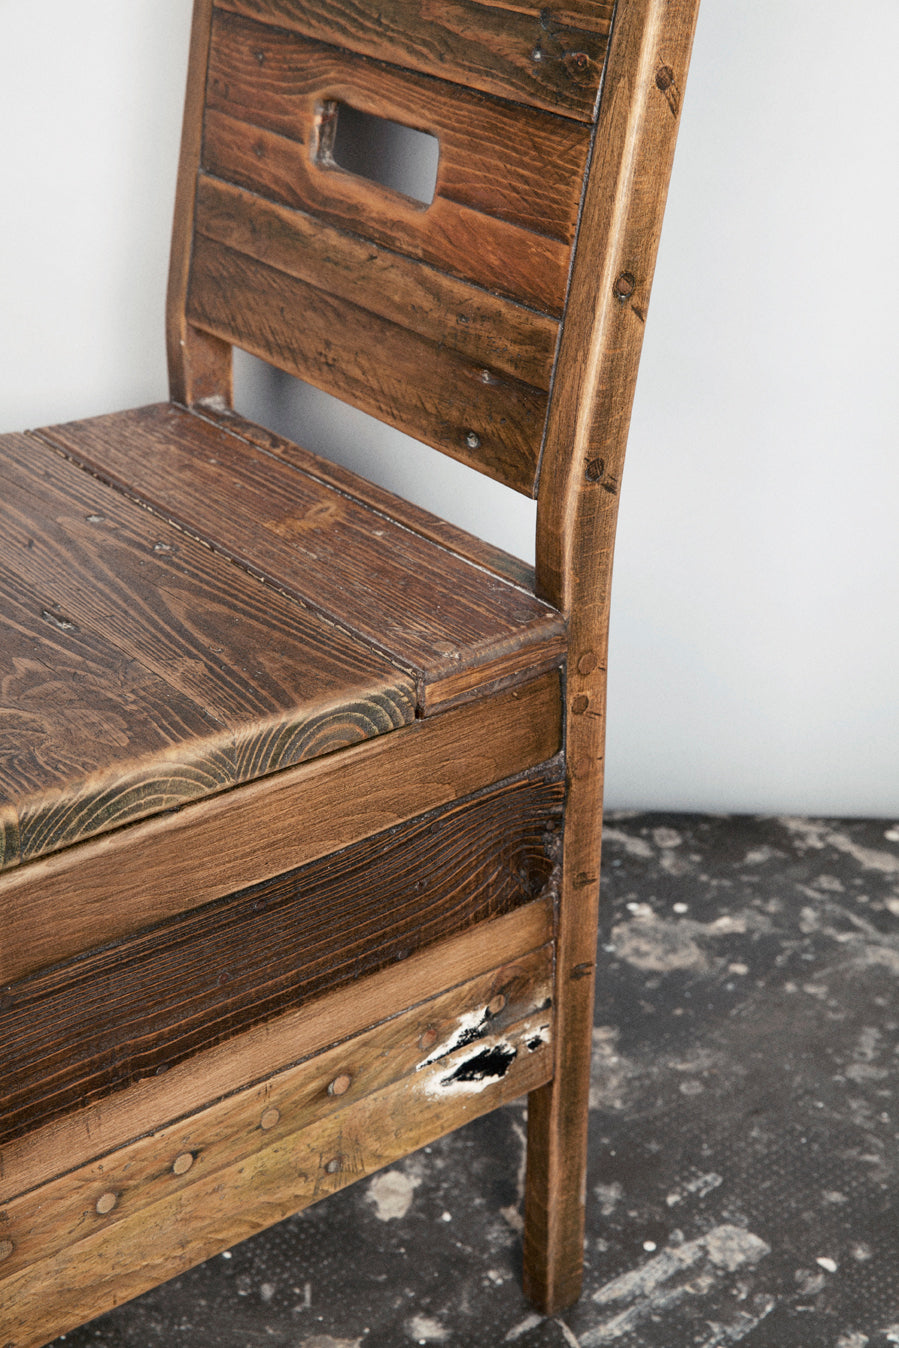 rE #3 | Chair with concealed storage